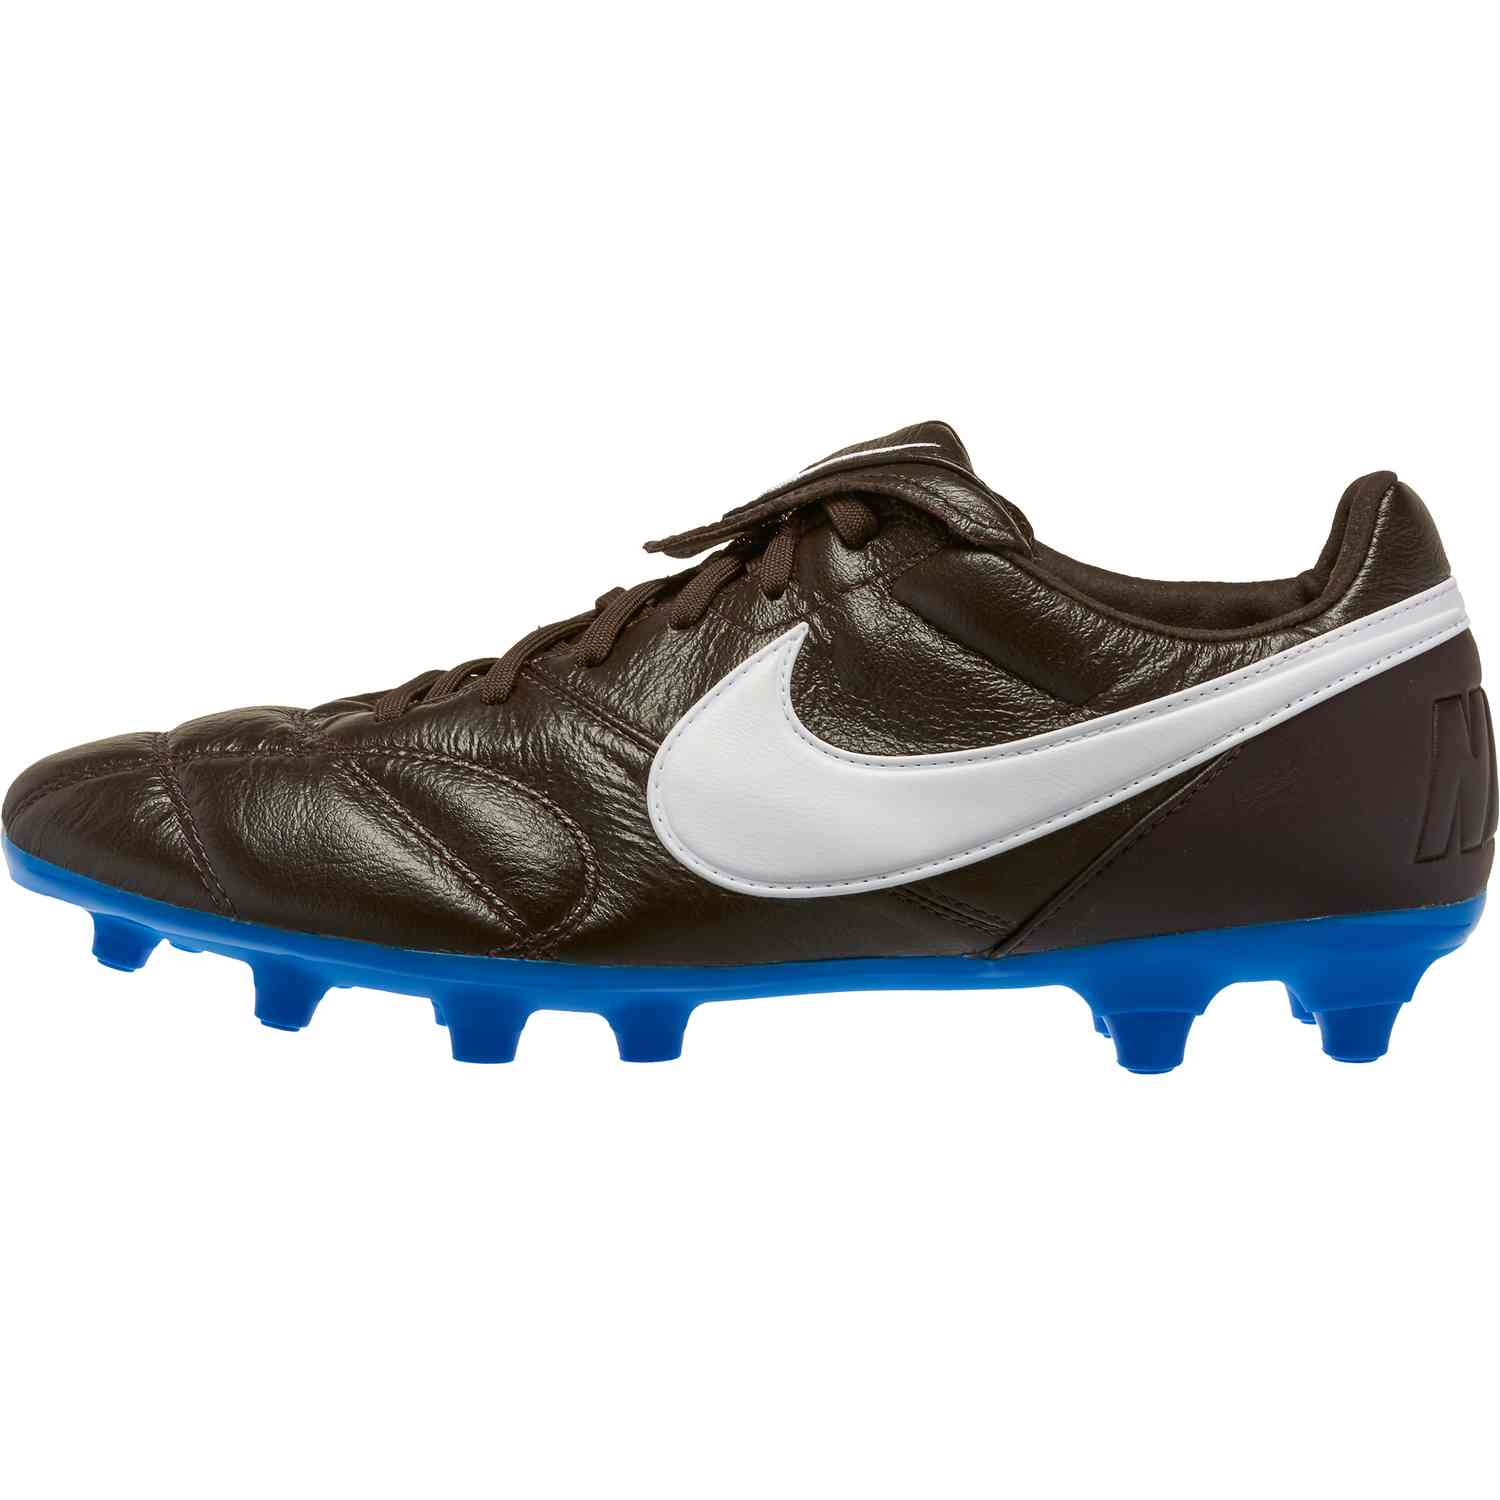 online retailer e6a17 7d2b2 Home   Shop By Brand   Nike Soccer   Nike Soccer Shoes   Nike Tiempo ...